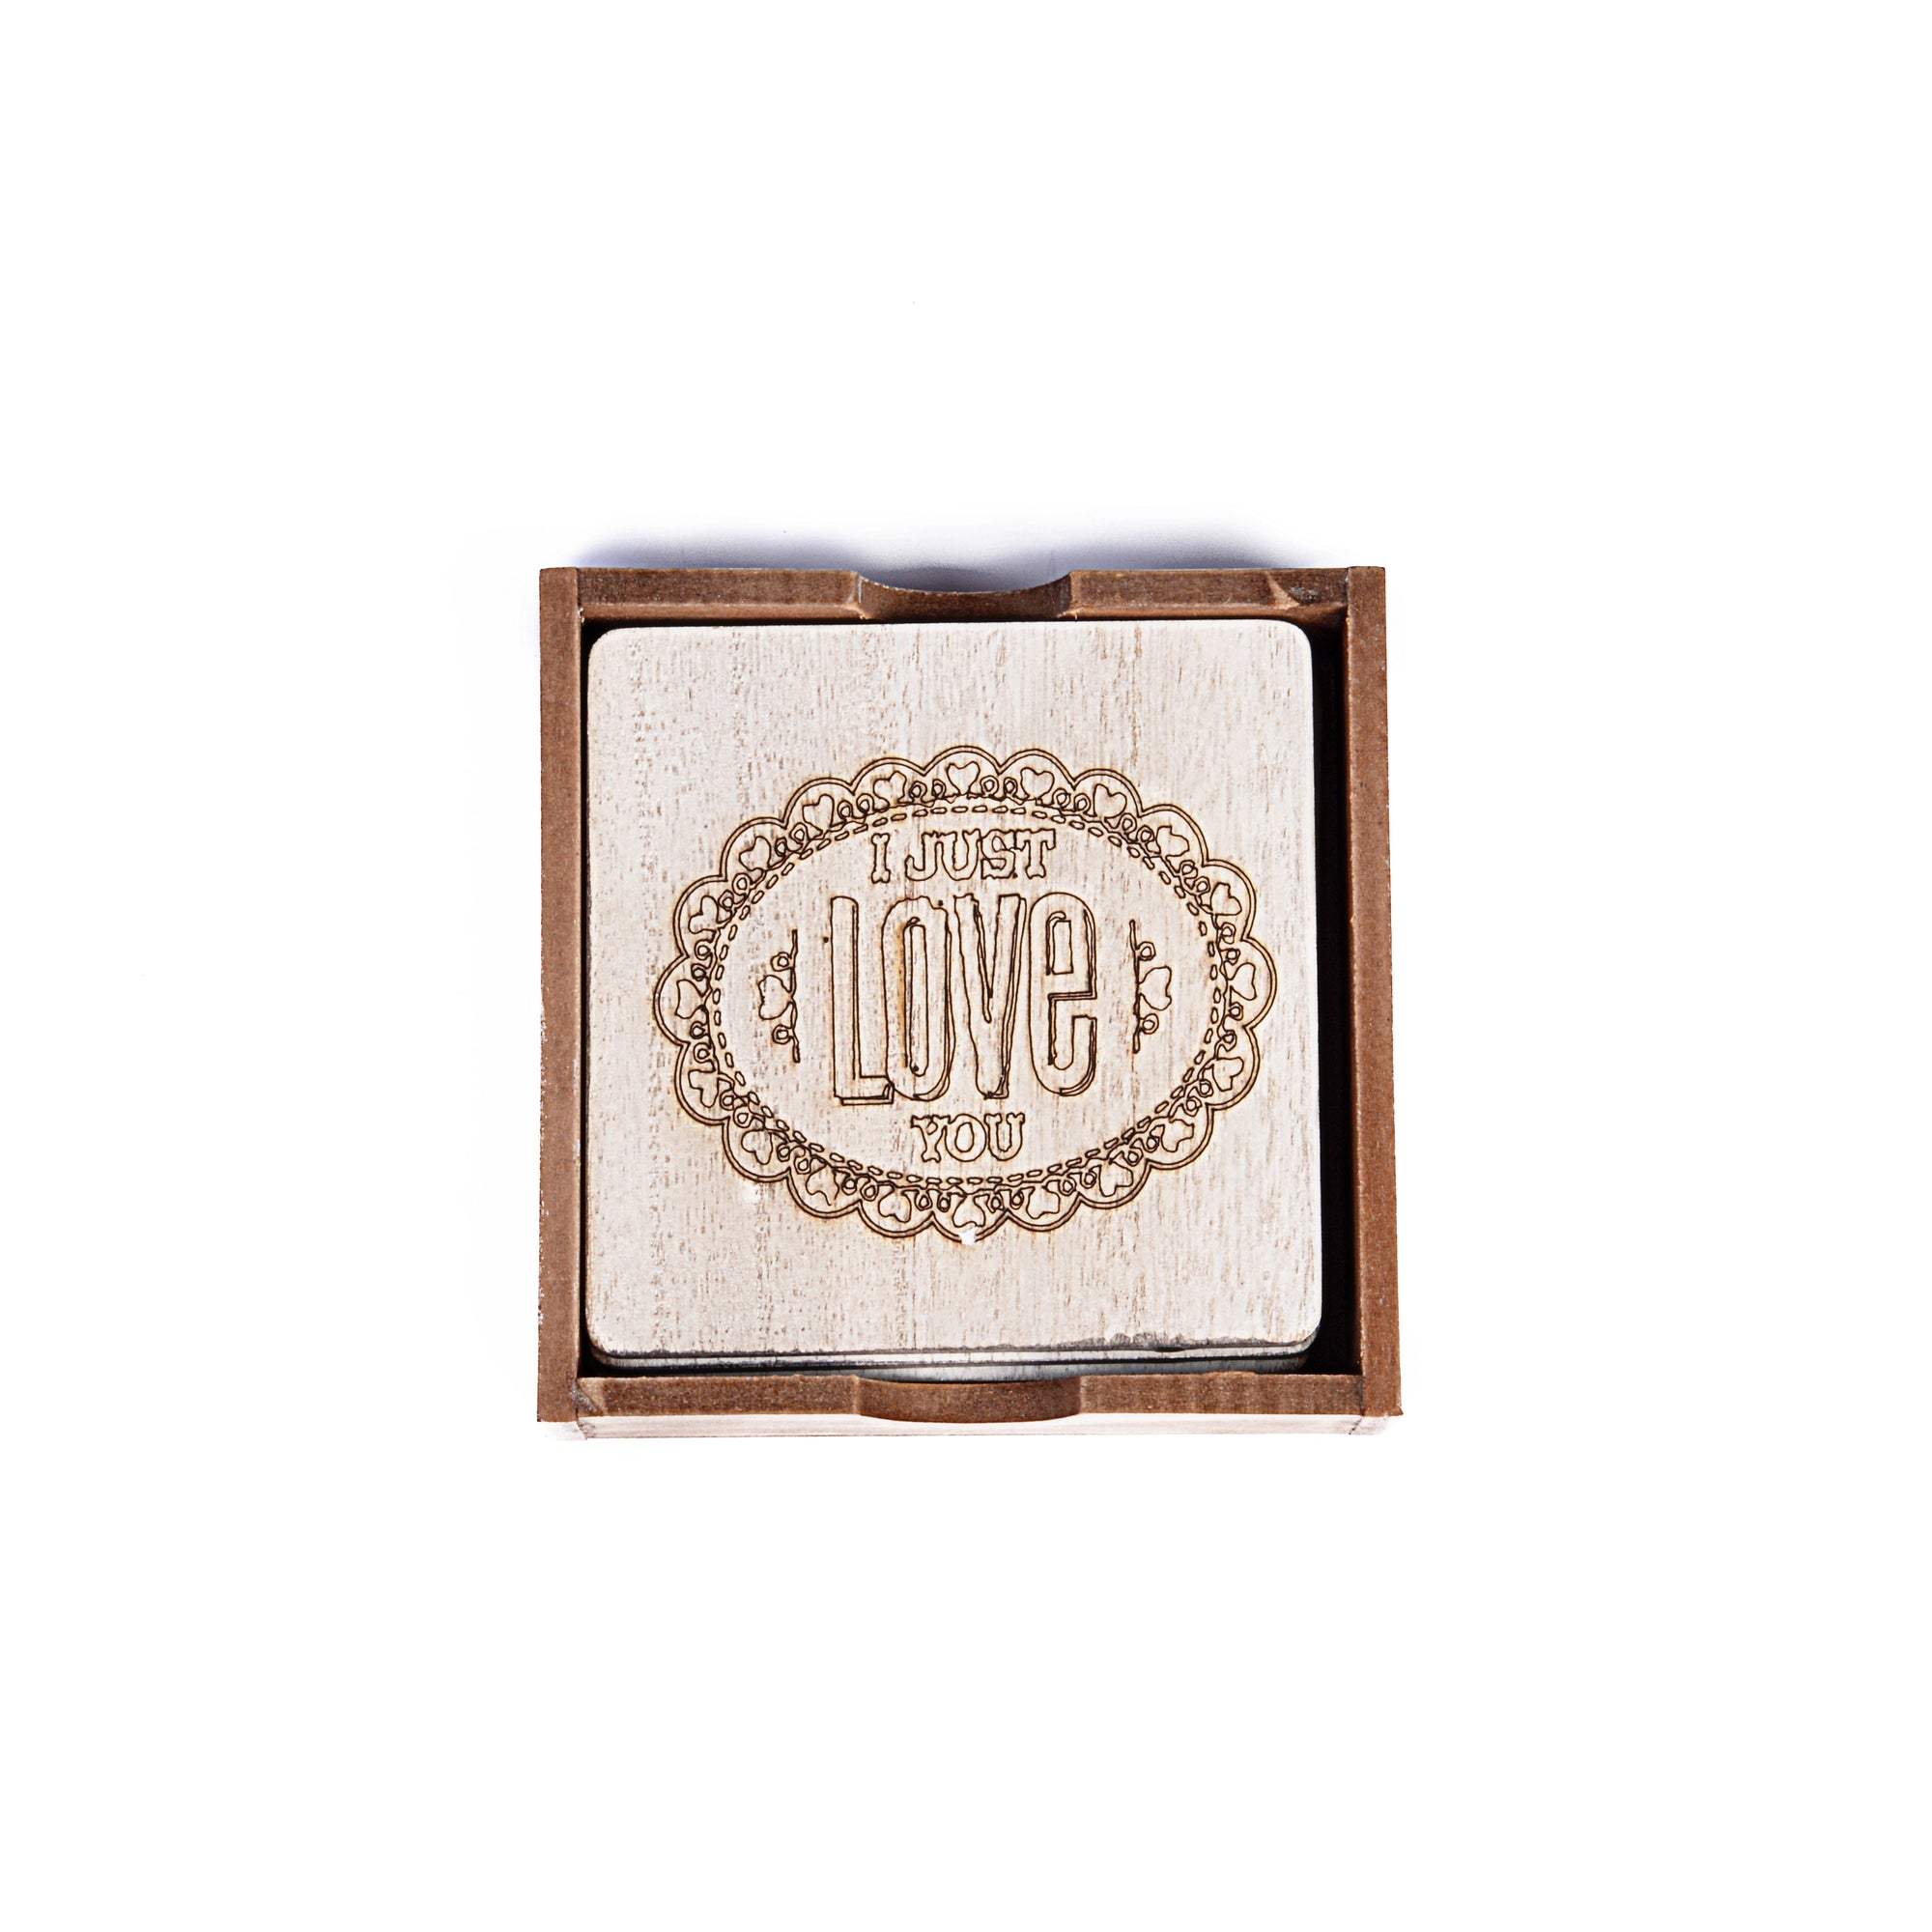 Hand en graved Table Coasters Quotations